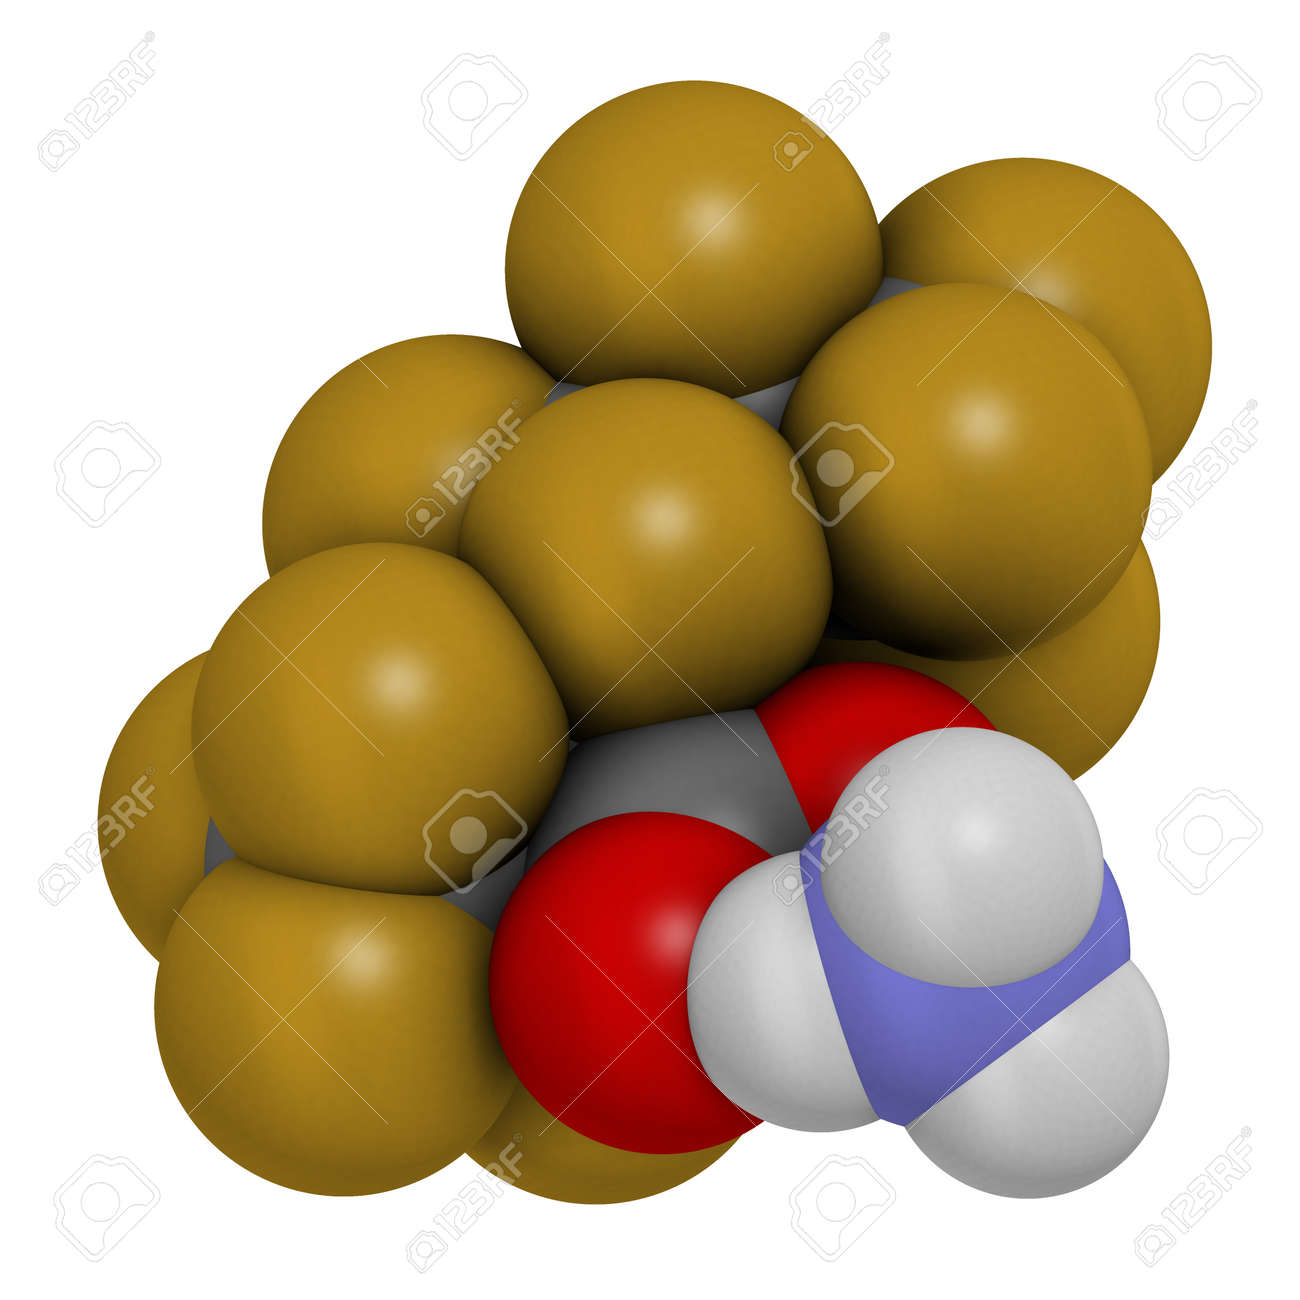 Ammonium perfluoro(2-methyl-3-oxahexanoate) molecule, also known as GenX or FRD-902. 3D rendering. Atoms are represented as spheres with conventional color coding: hydrogen (white), carbon (grey), oxygen (red), nitrogen (blue), fluorine (gold). - 153526595